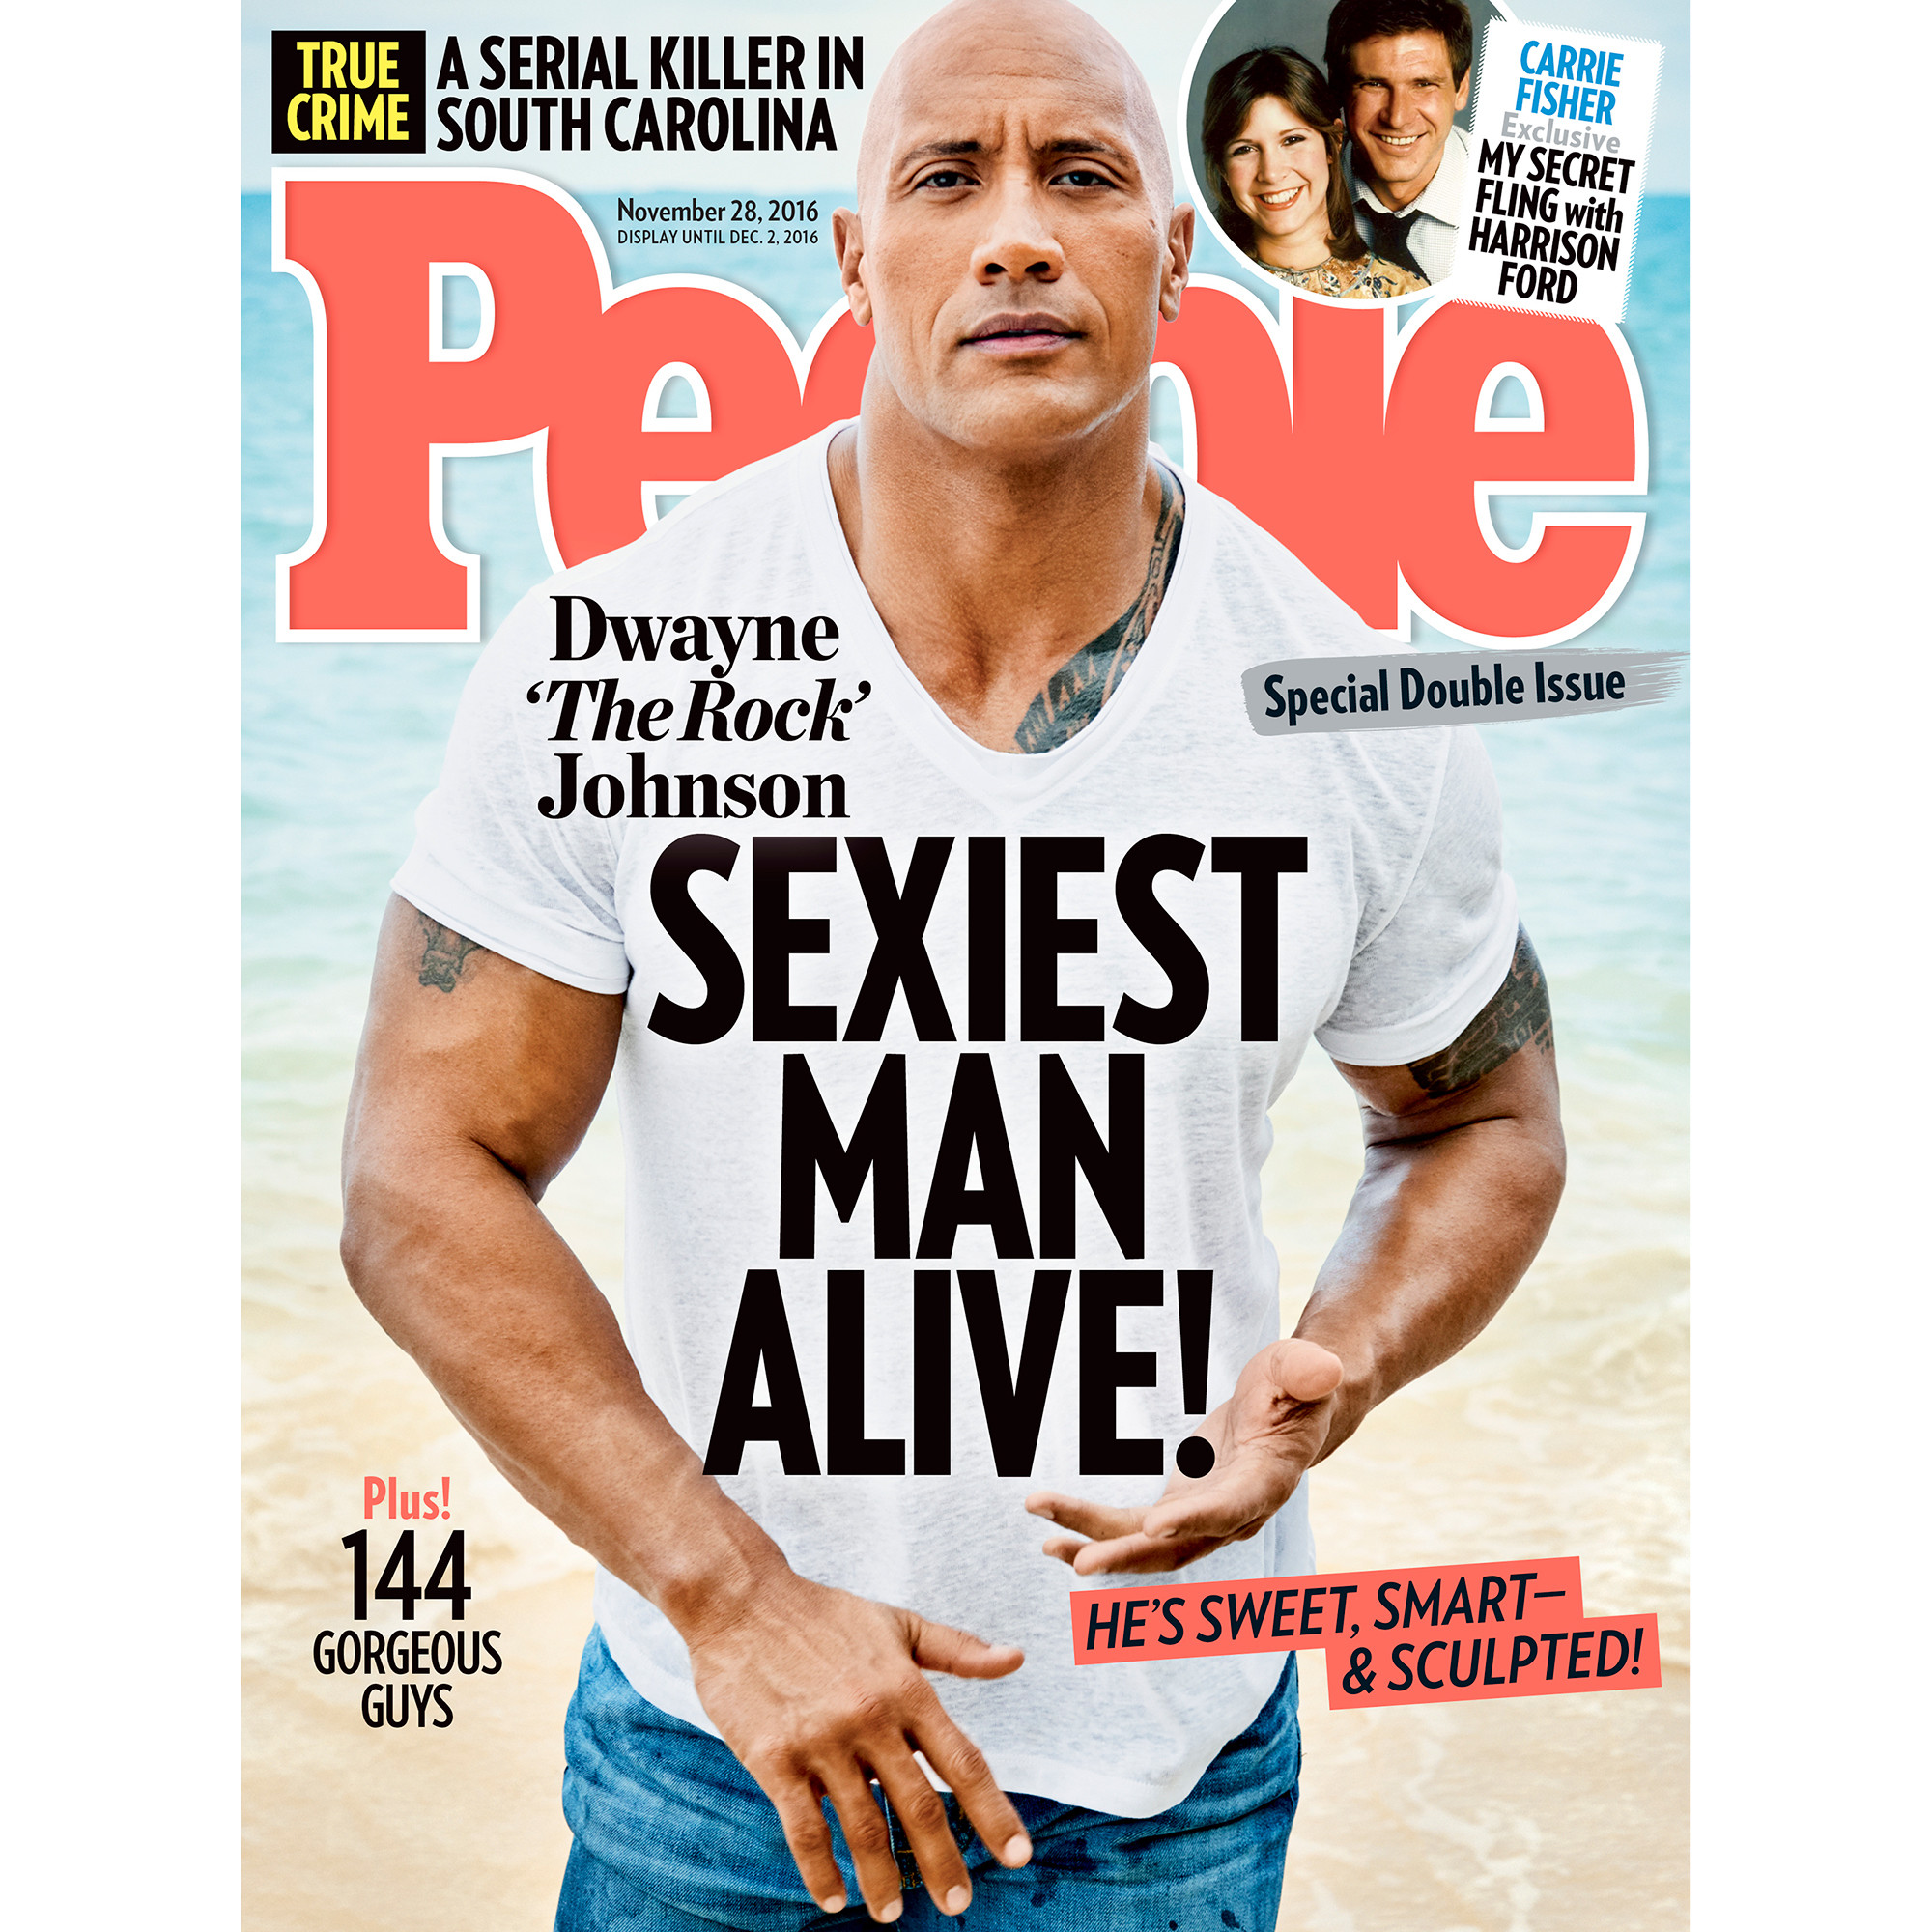 Dwayne 'The Rock' Johnson Is People's 'Sexiest Man Alive' in 2016